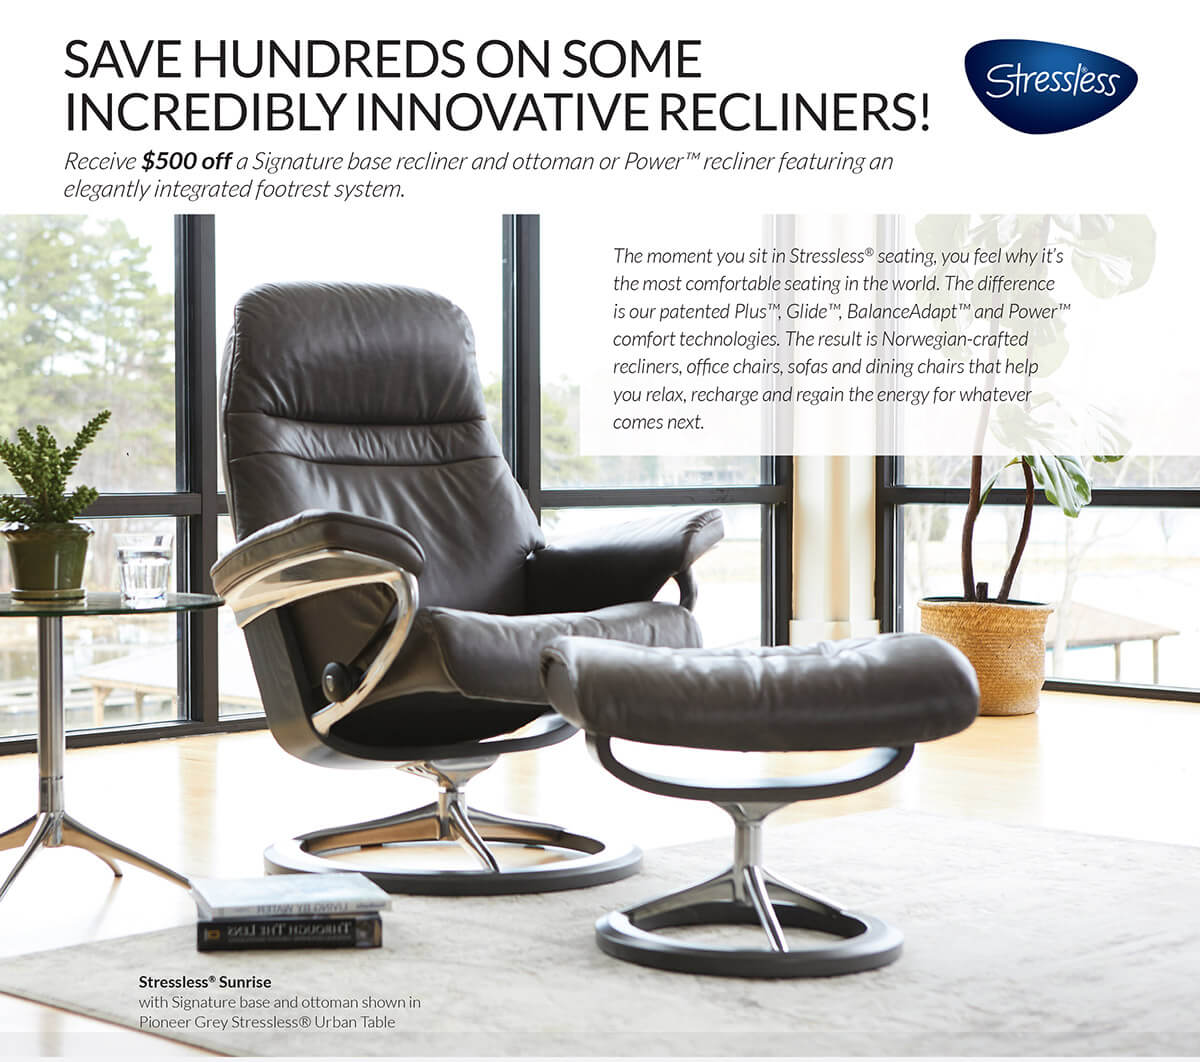 SAVE HUNDREDS ON SOME INCREDIBLY INNOVATIVE RECLINERS from Stressless! Receive $500 OFF a Signature base recliner and ottoman or Power recliner featuring an elegantly integrated footrest system.